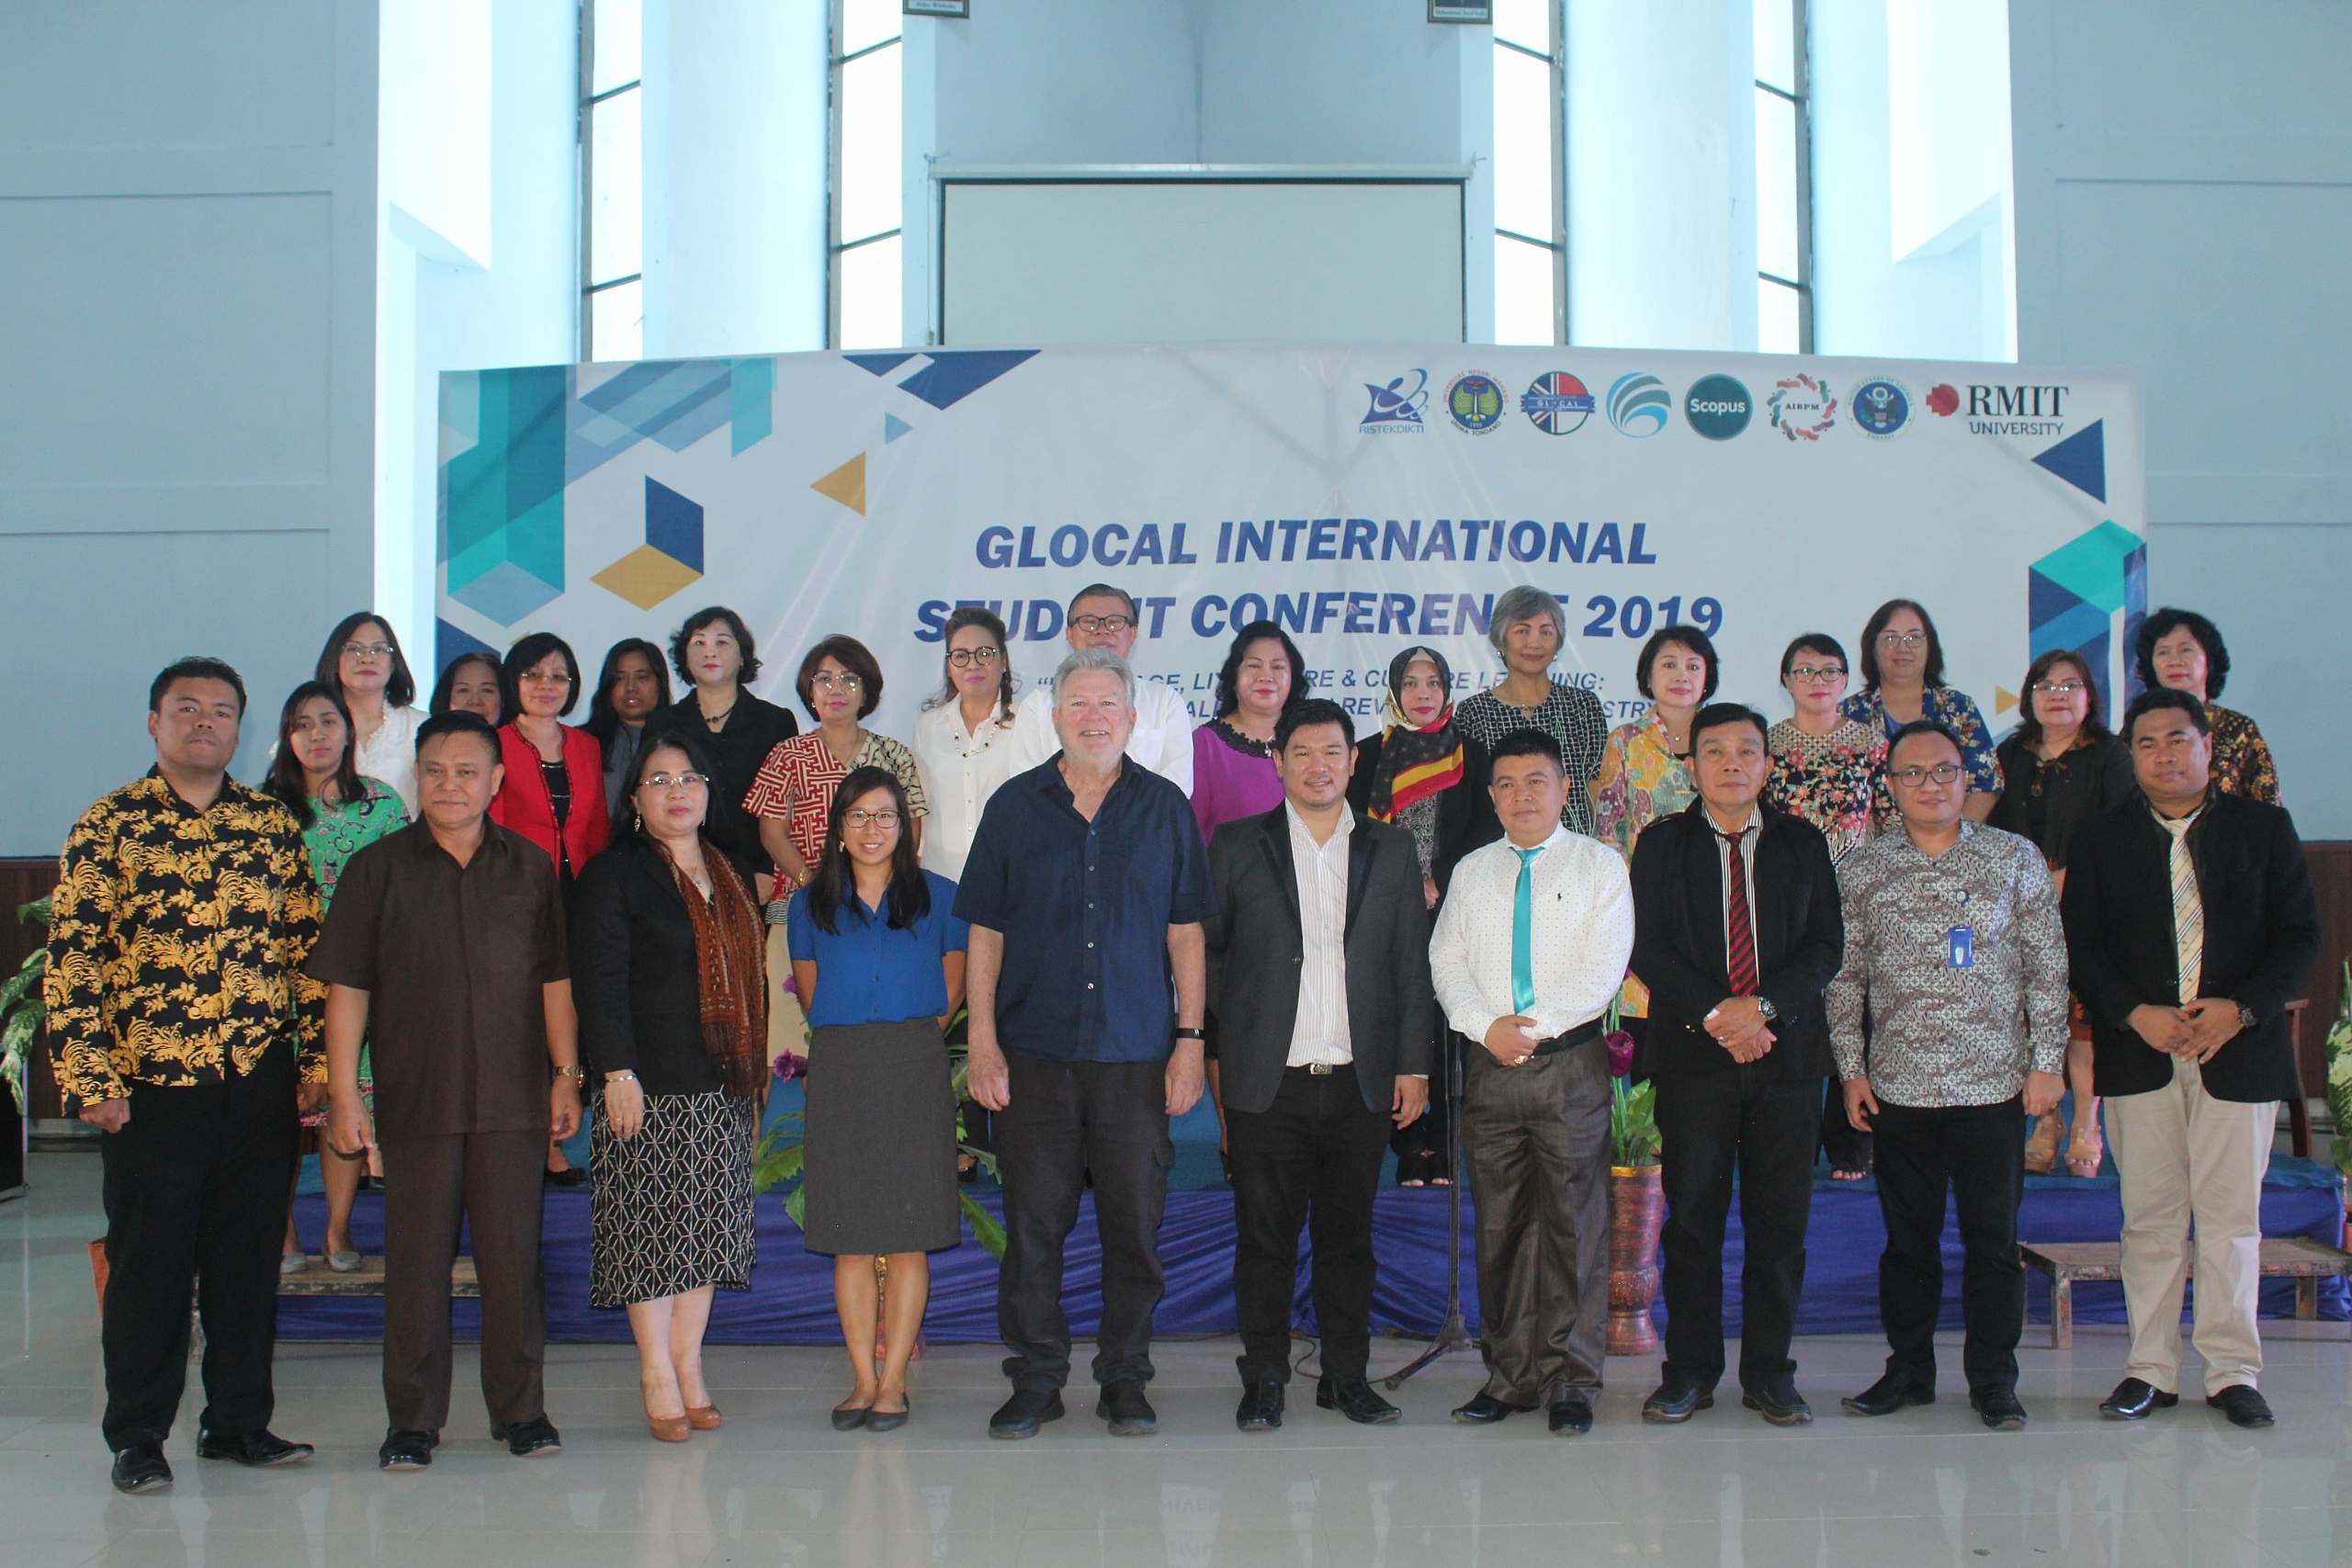 Glocal International Student Conference